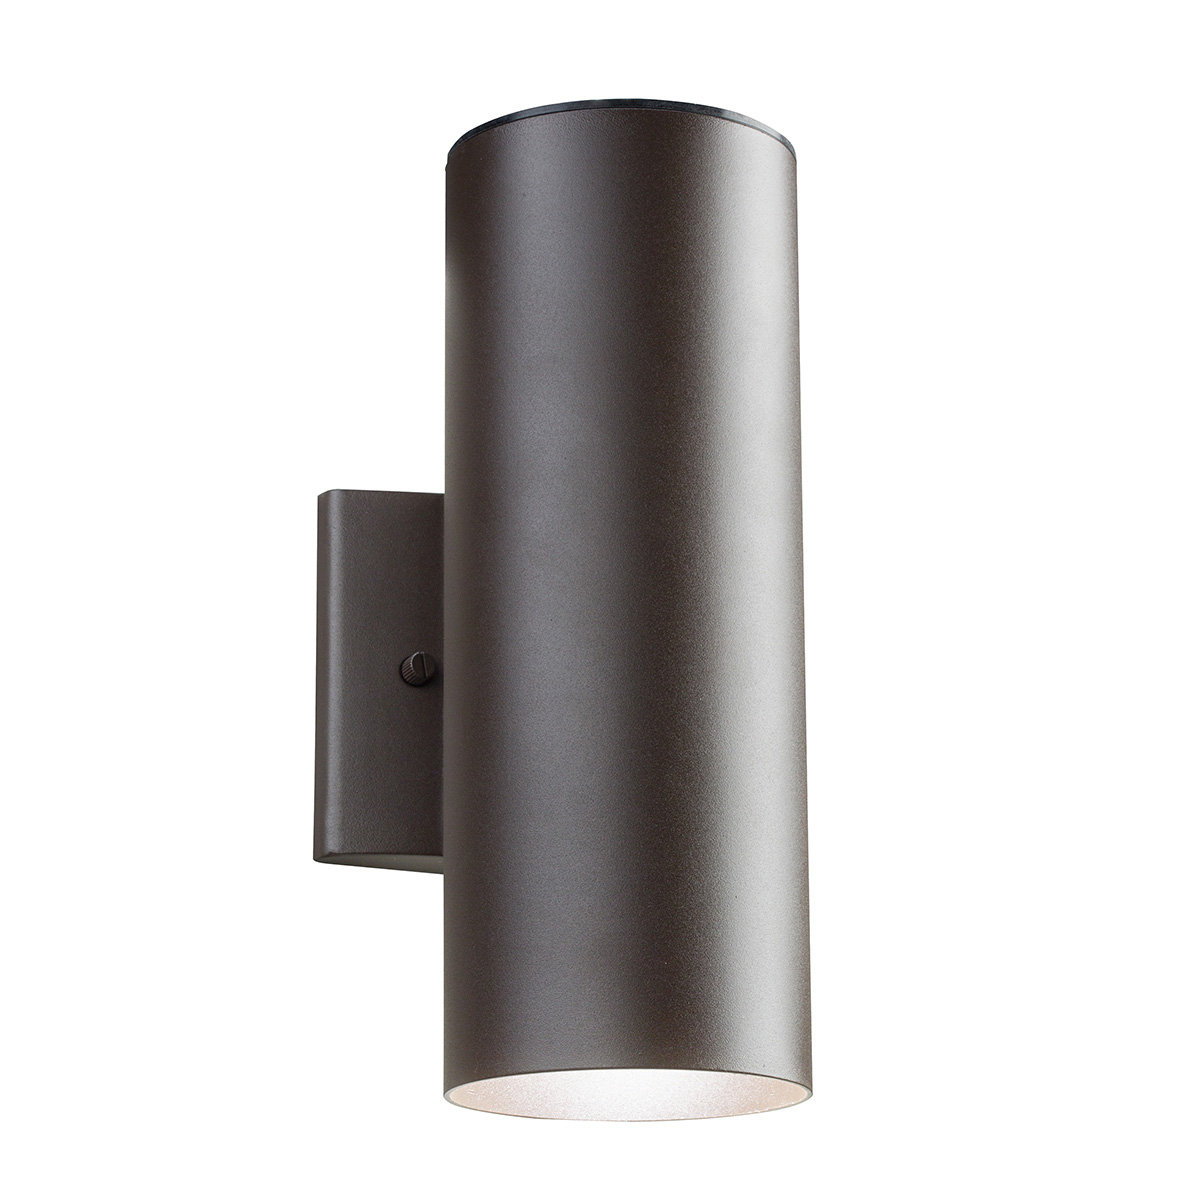 Great 11251 Outdoor LED Up/Down Wall Sconce By Kichler | 11251AZT30